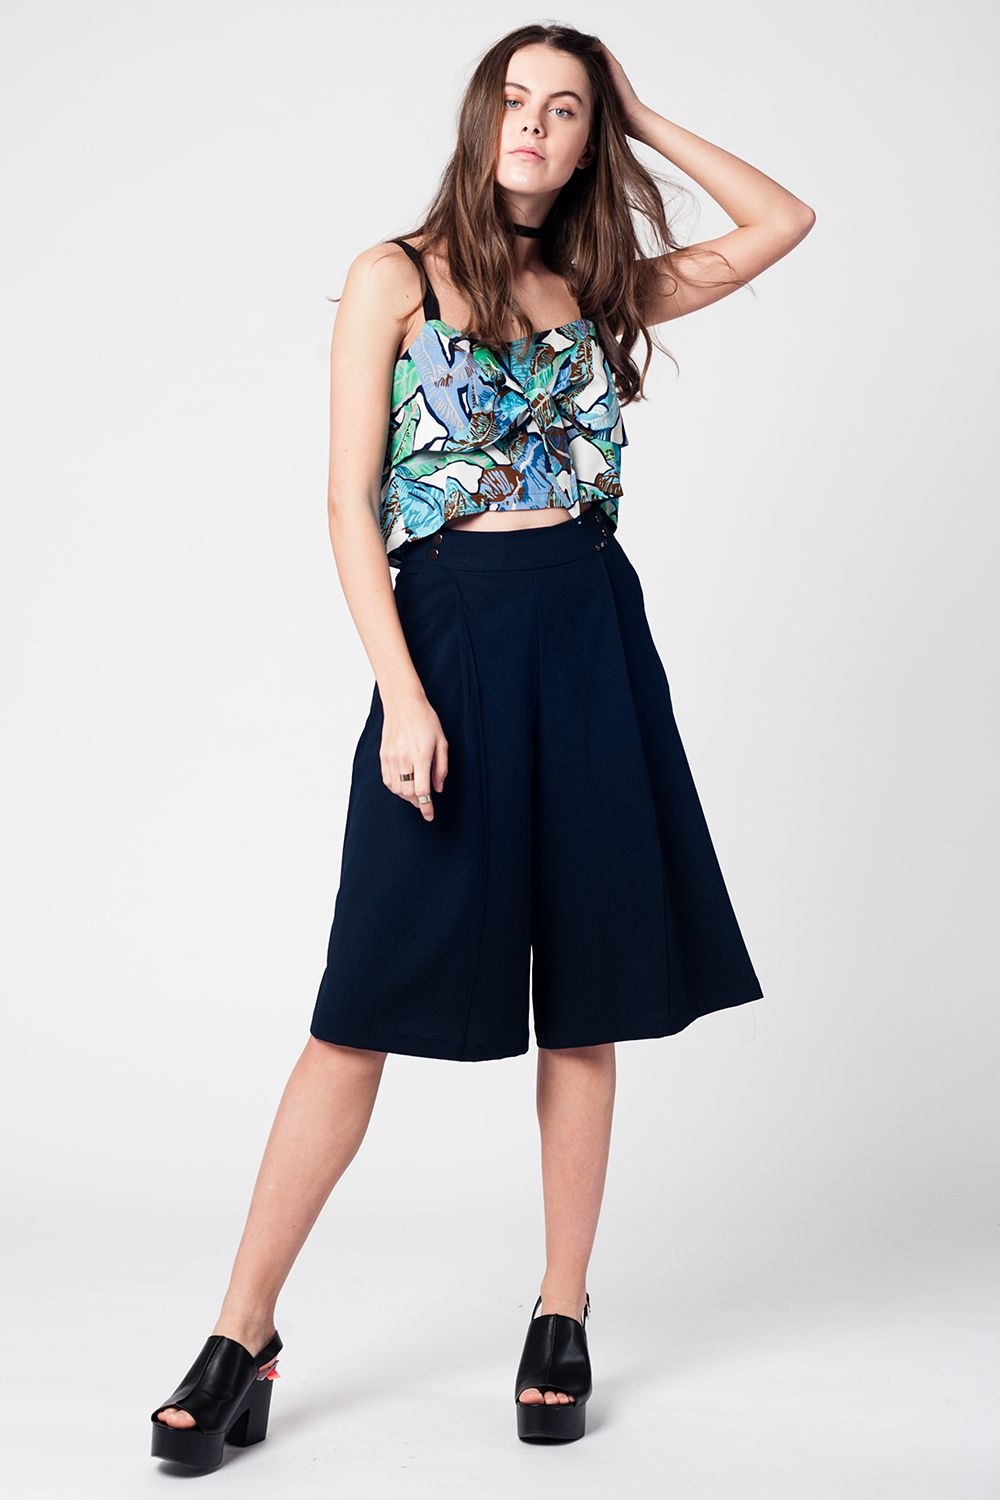 Blue Crop Top With Leaves Print-Women - Apparel - Shirts - Blouses-Product Details Short blue top with leaf print and black straps. Features knotted detail on both the back and the front.-Keyomi-Sook